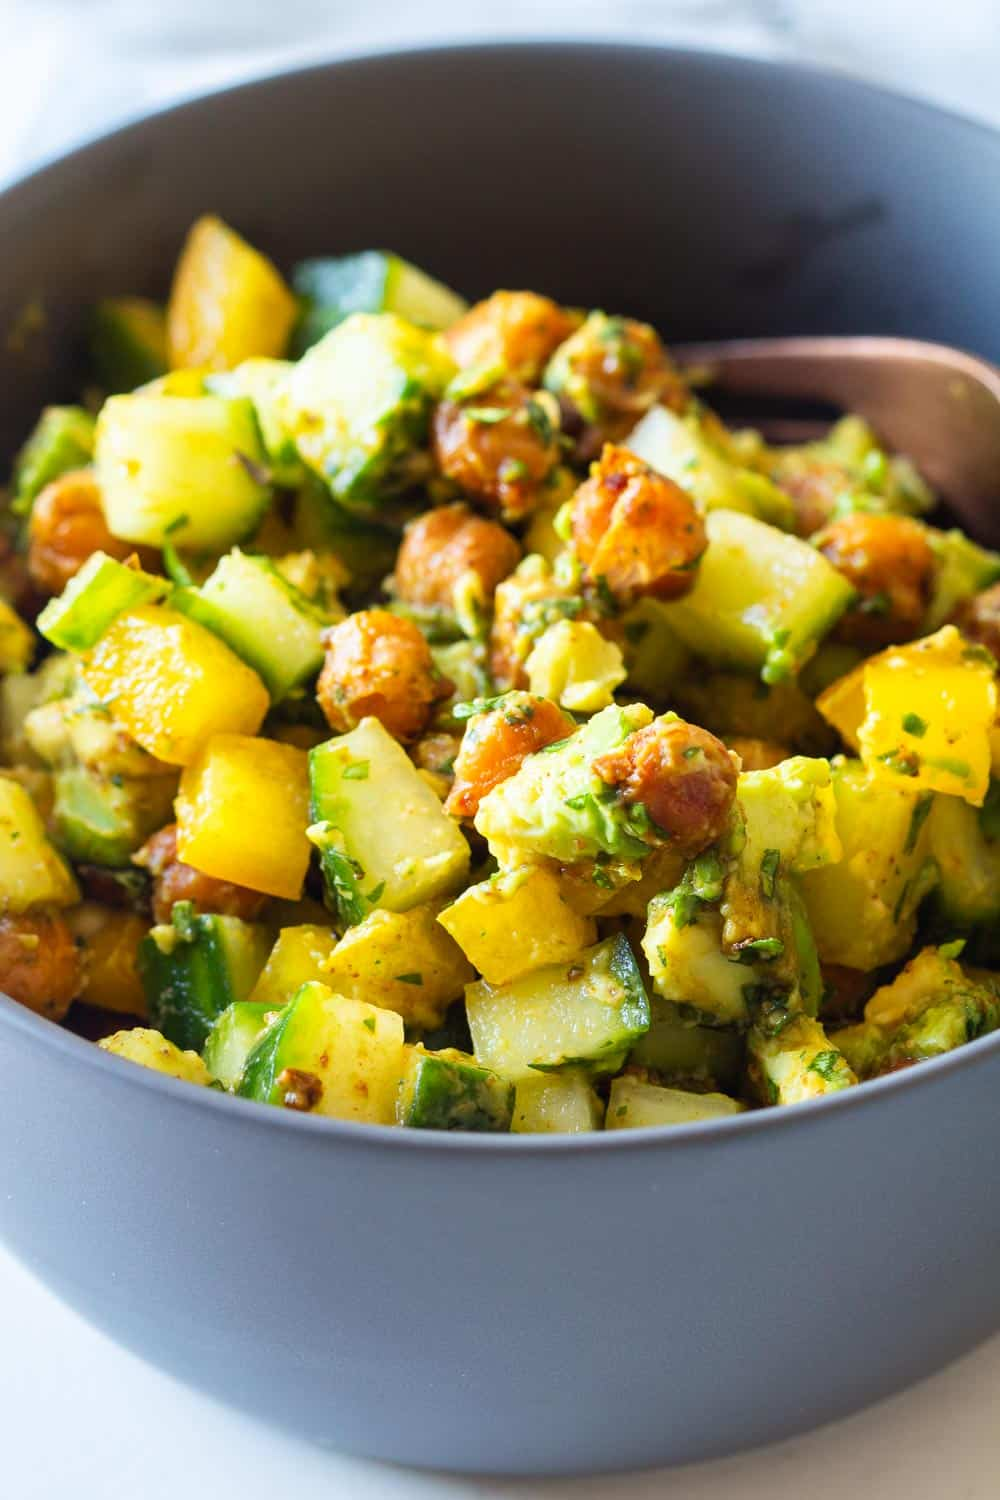 Mixed up Cucumber Avocado Salad in a small grey bowl